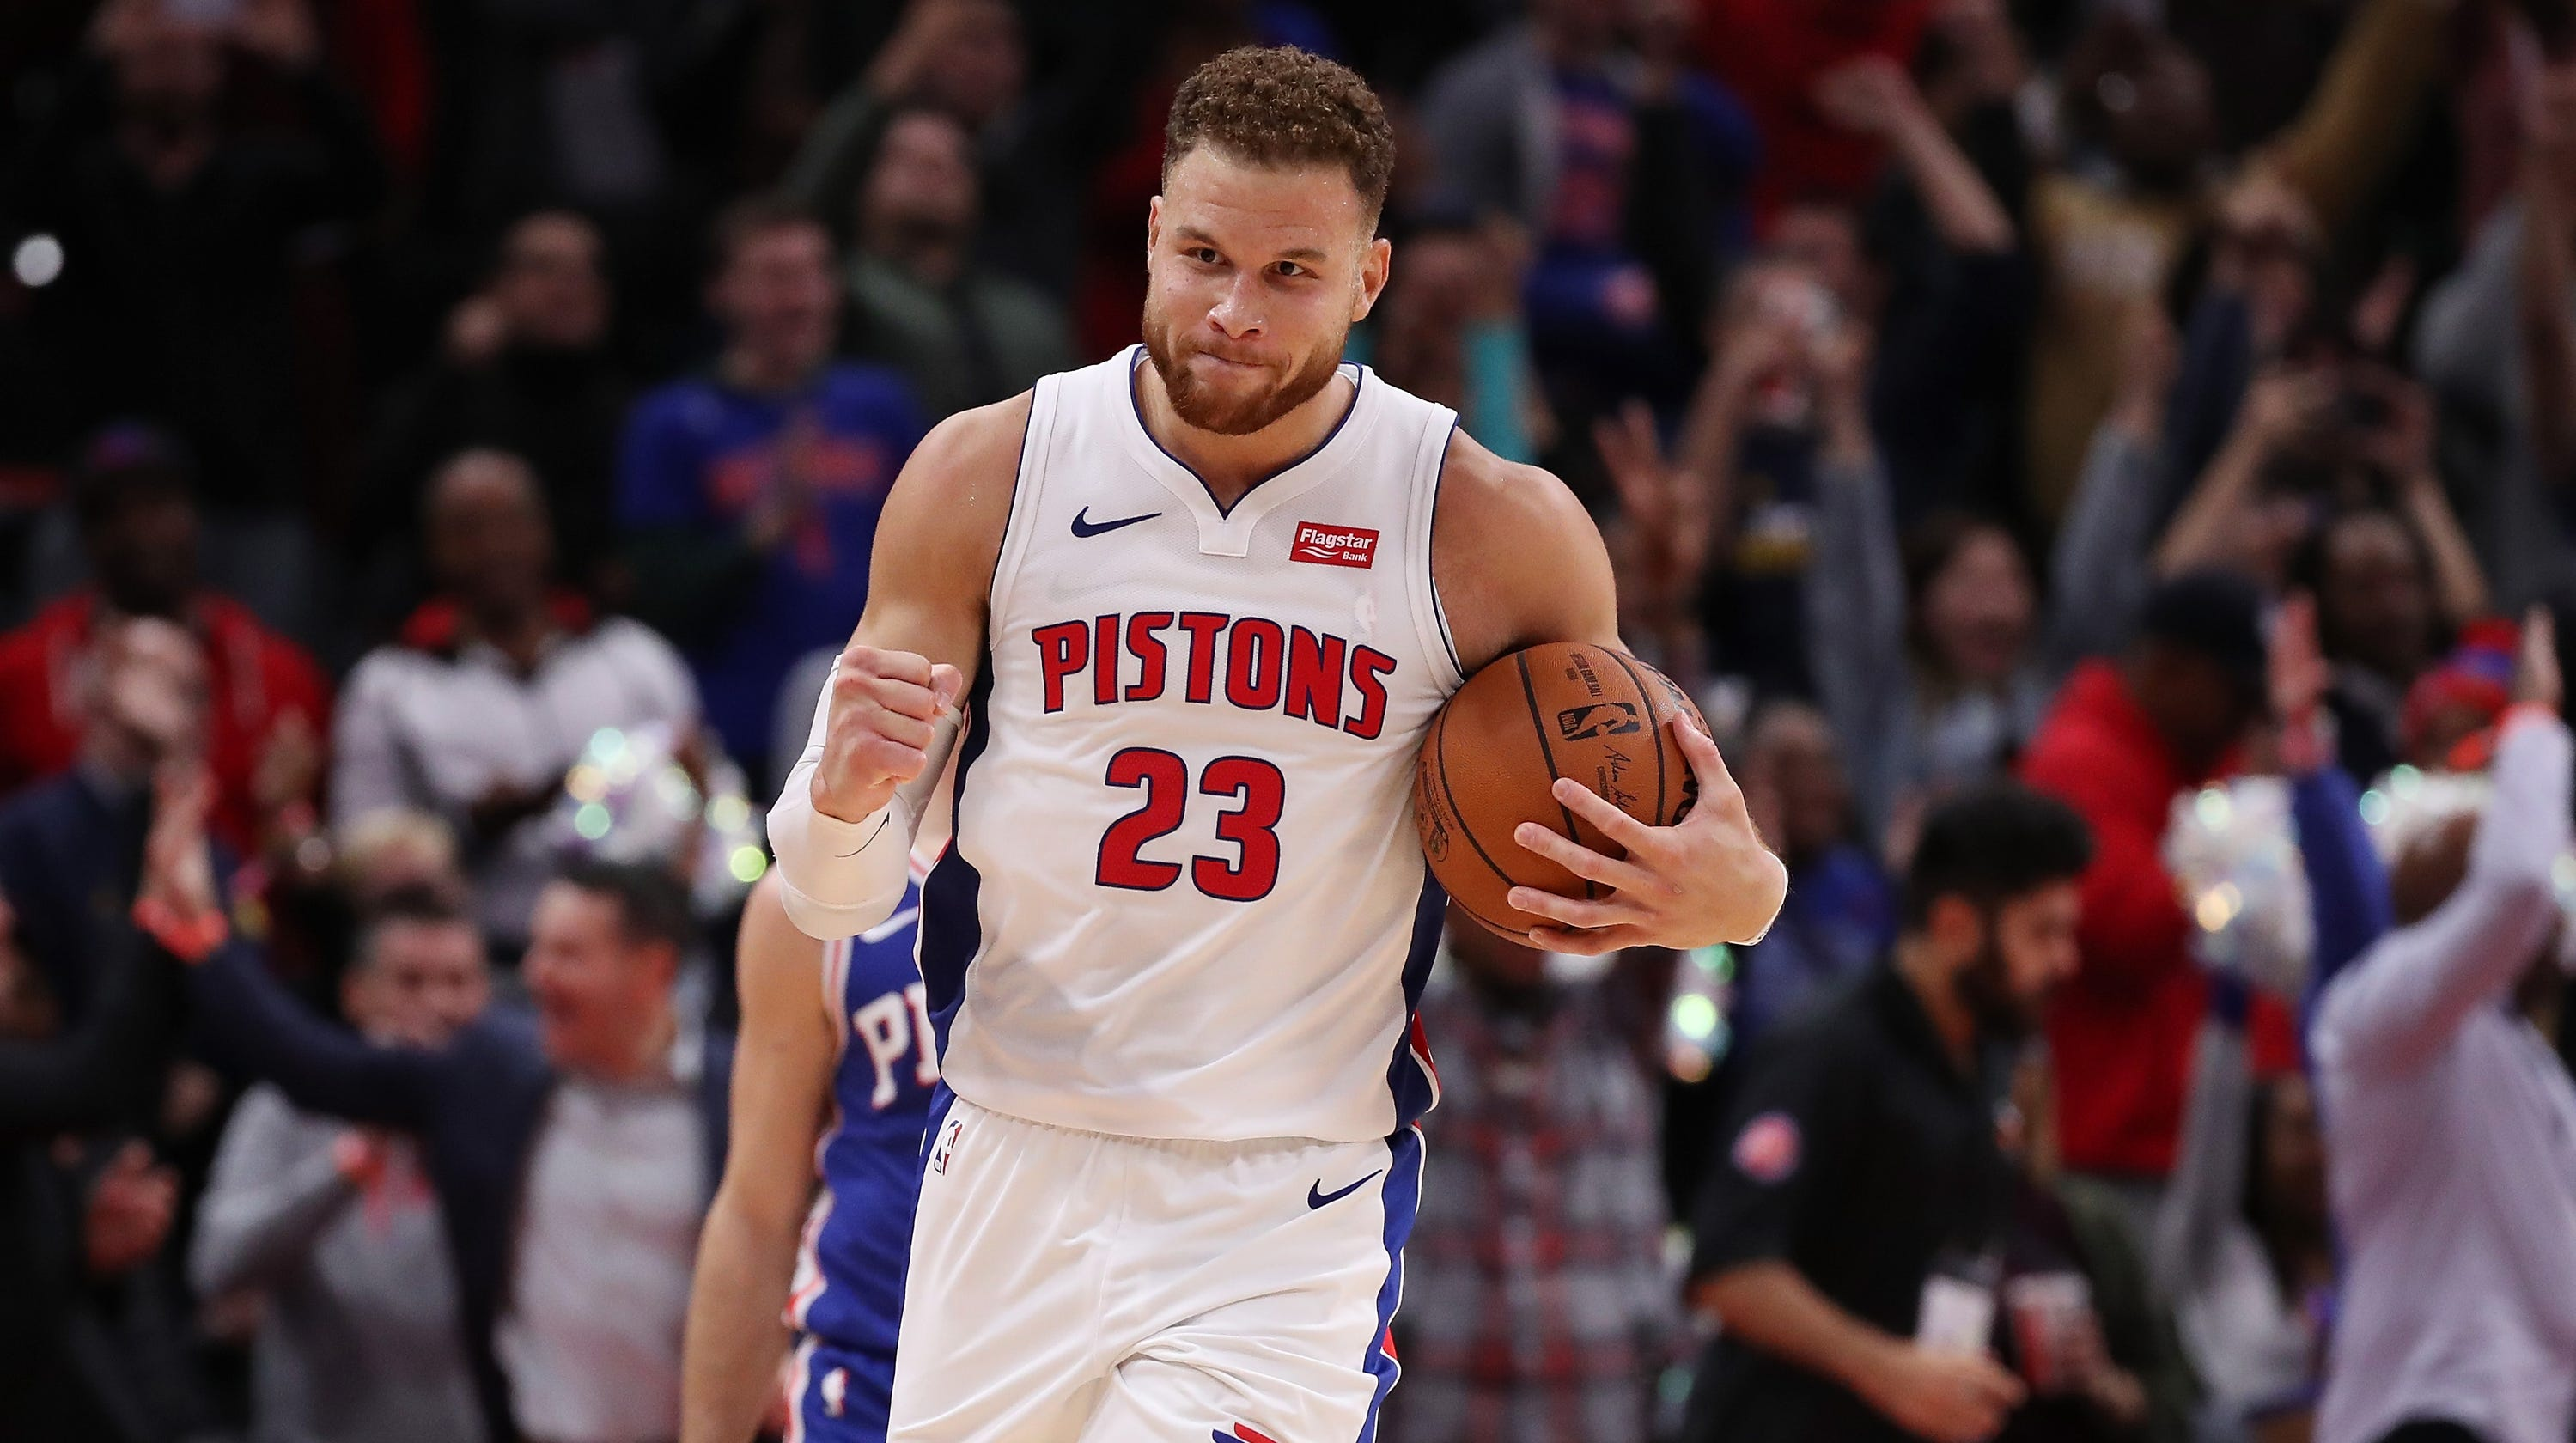 f65df58255f Blake Griffin scores career-high 50 points, Pistons beat 76ers in OT